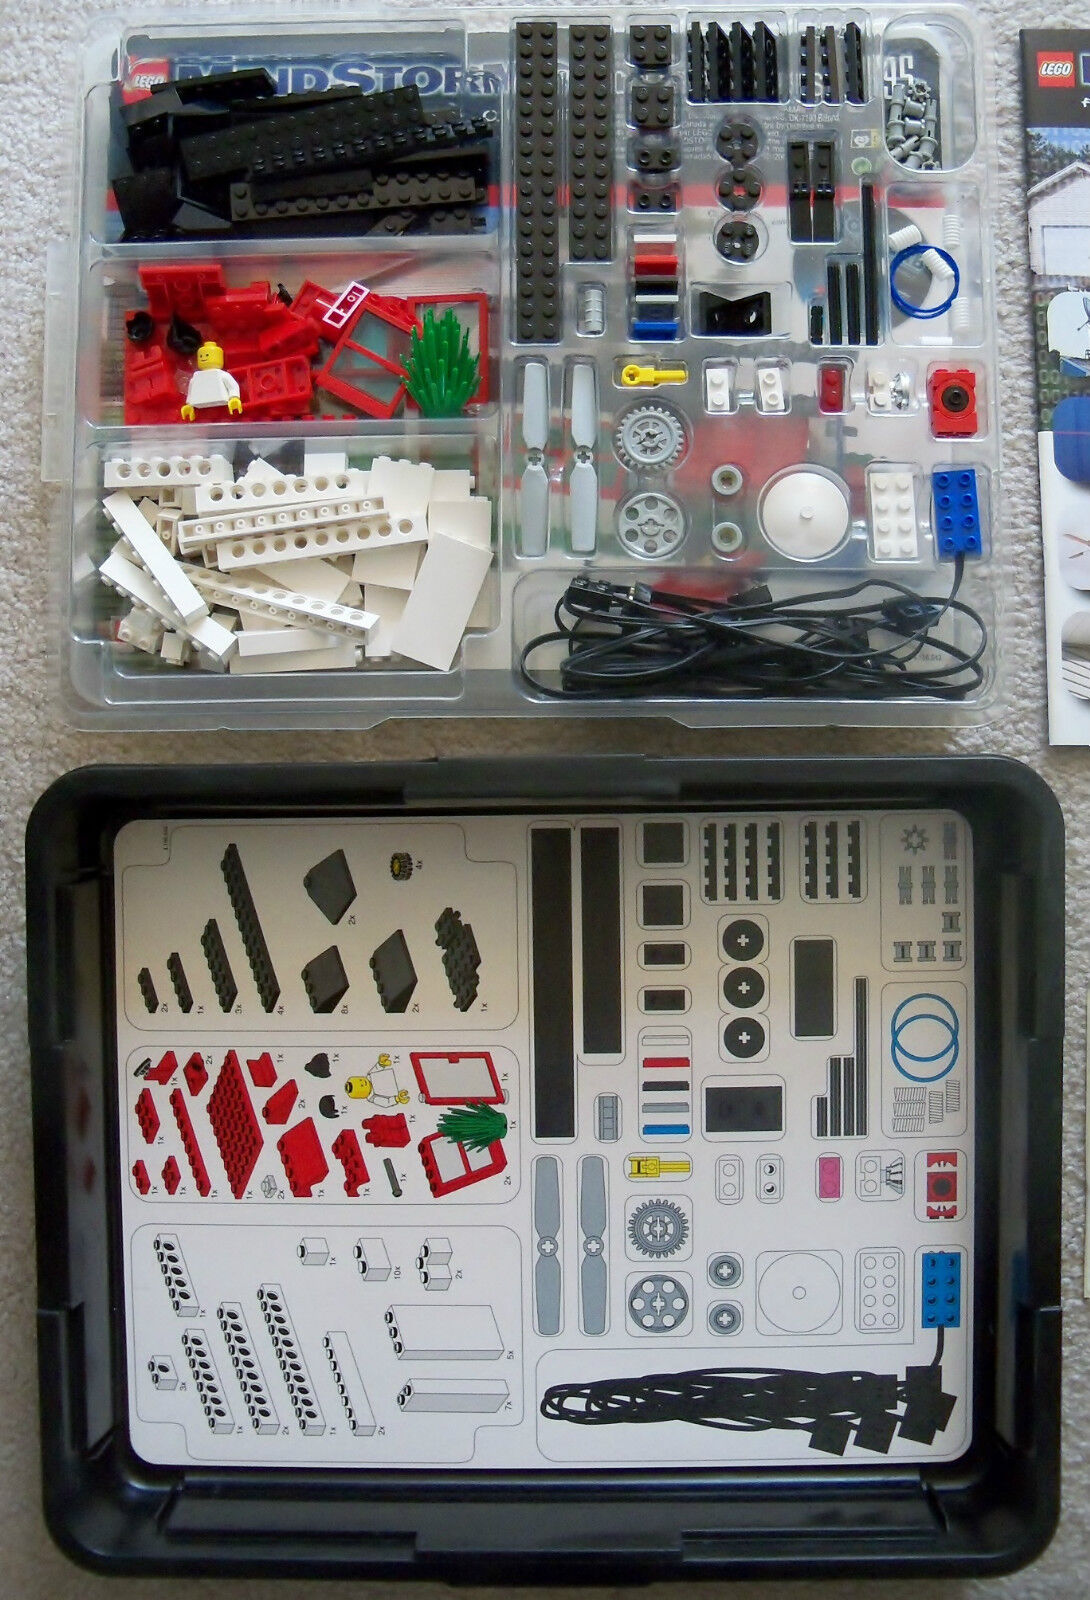 LEGO - Mindstorms ROBOLAB RCX - - - Rare - 9795 Intelligent House Building Set 324827